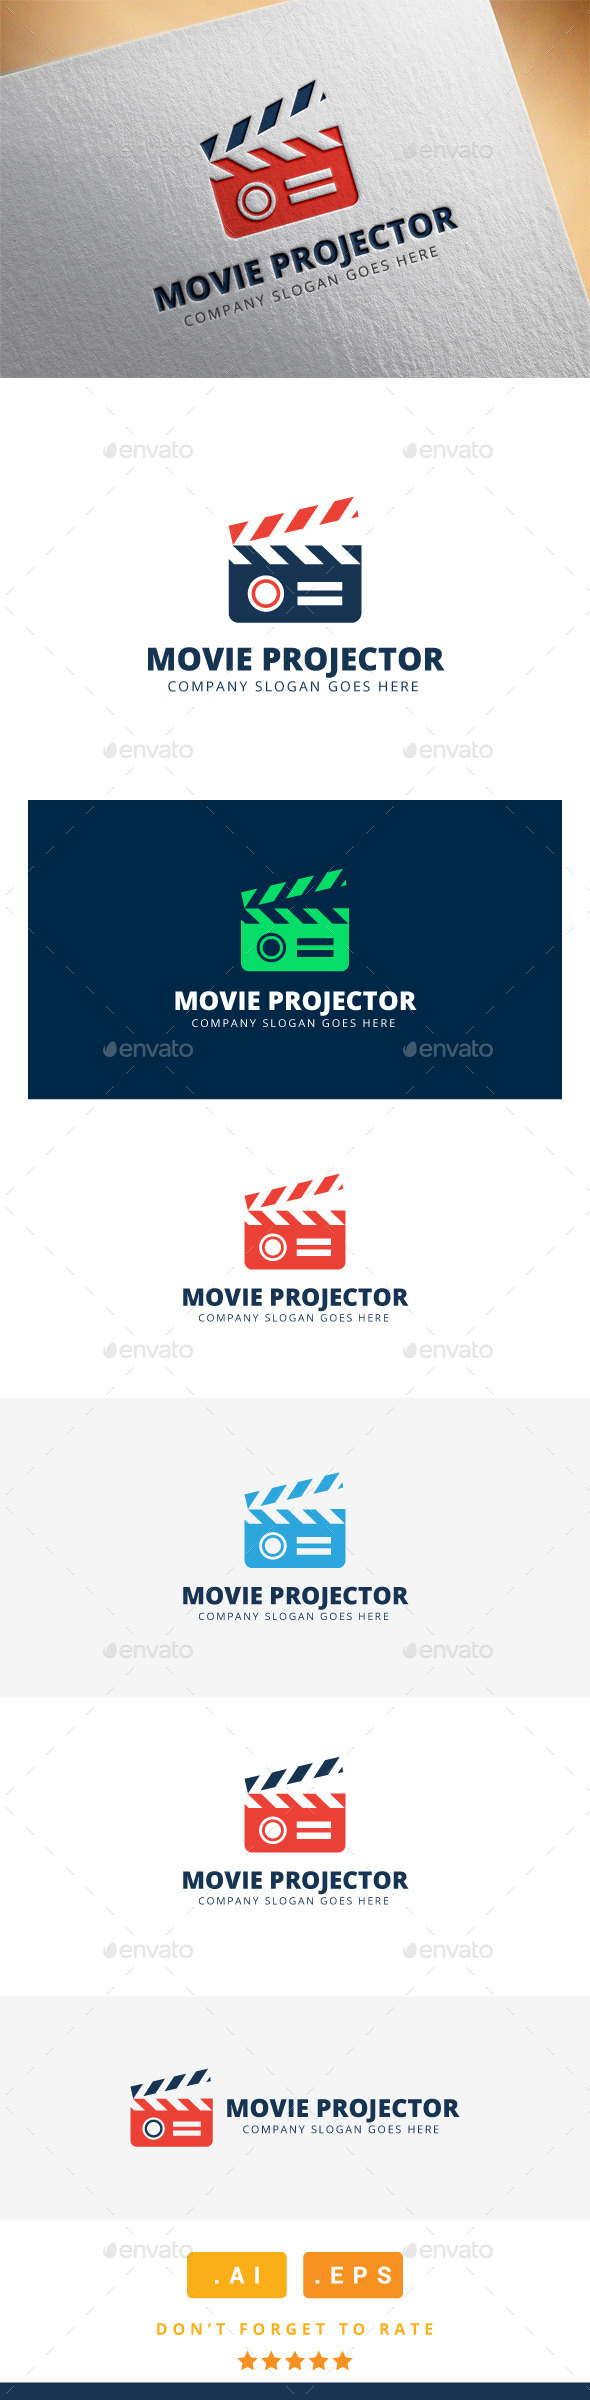 GraphicRiver Movie Projector Logo 11508421